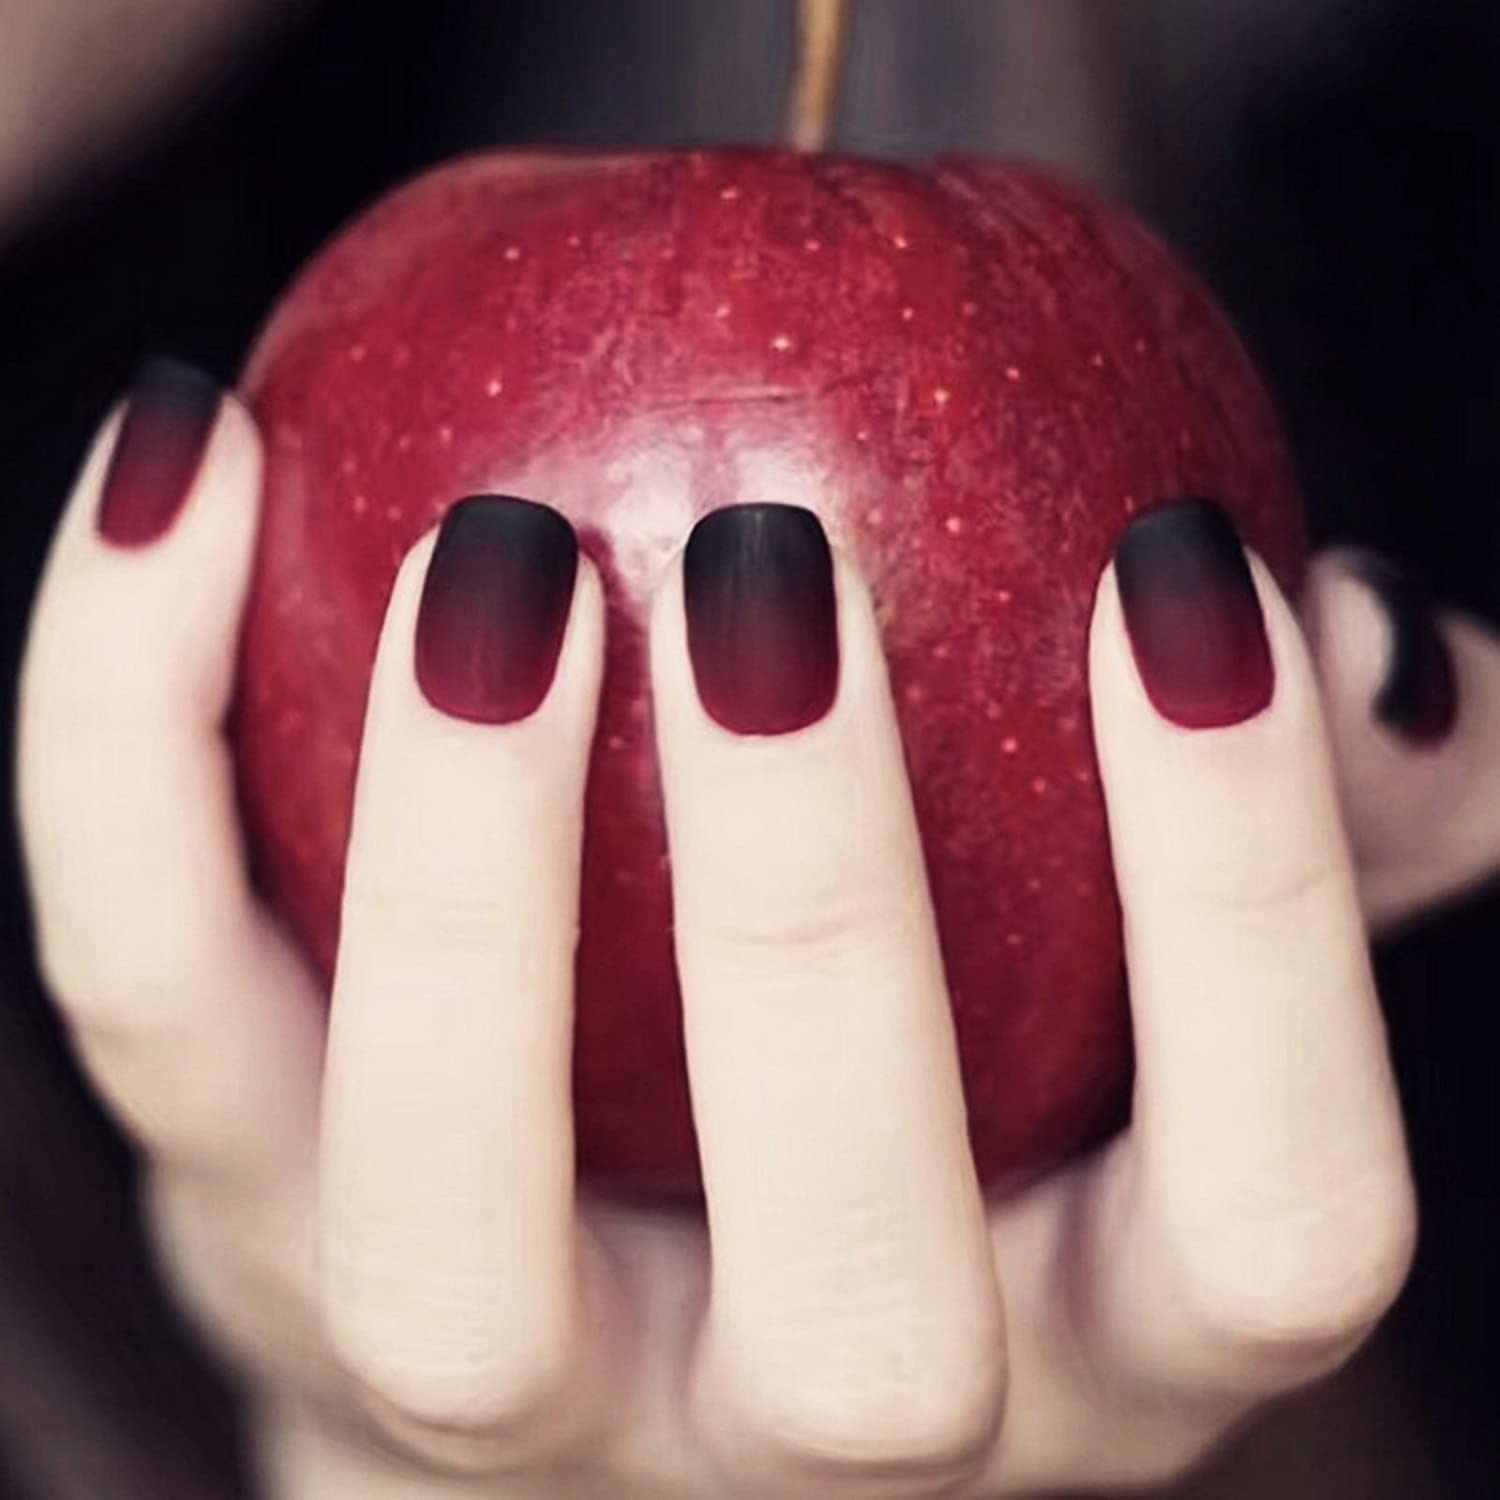 Urberry Fairy tale Apple Gradient Black Red Matte Short Square Full Cover  False Nails Fake Nail Tips 24Pcs/Set